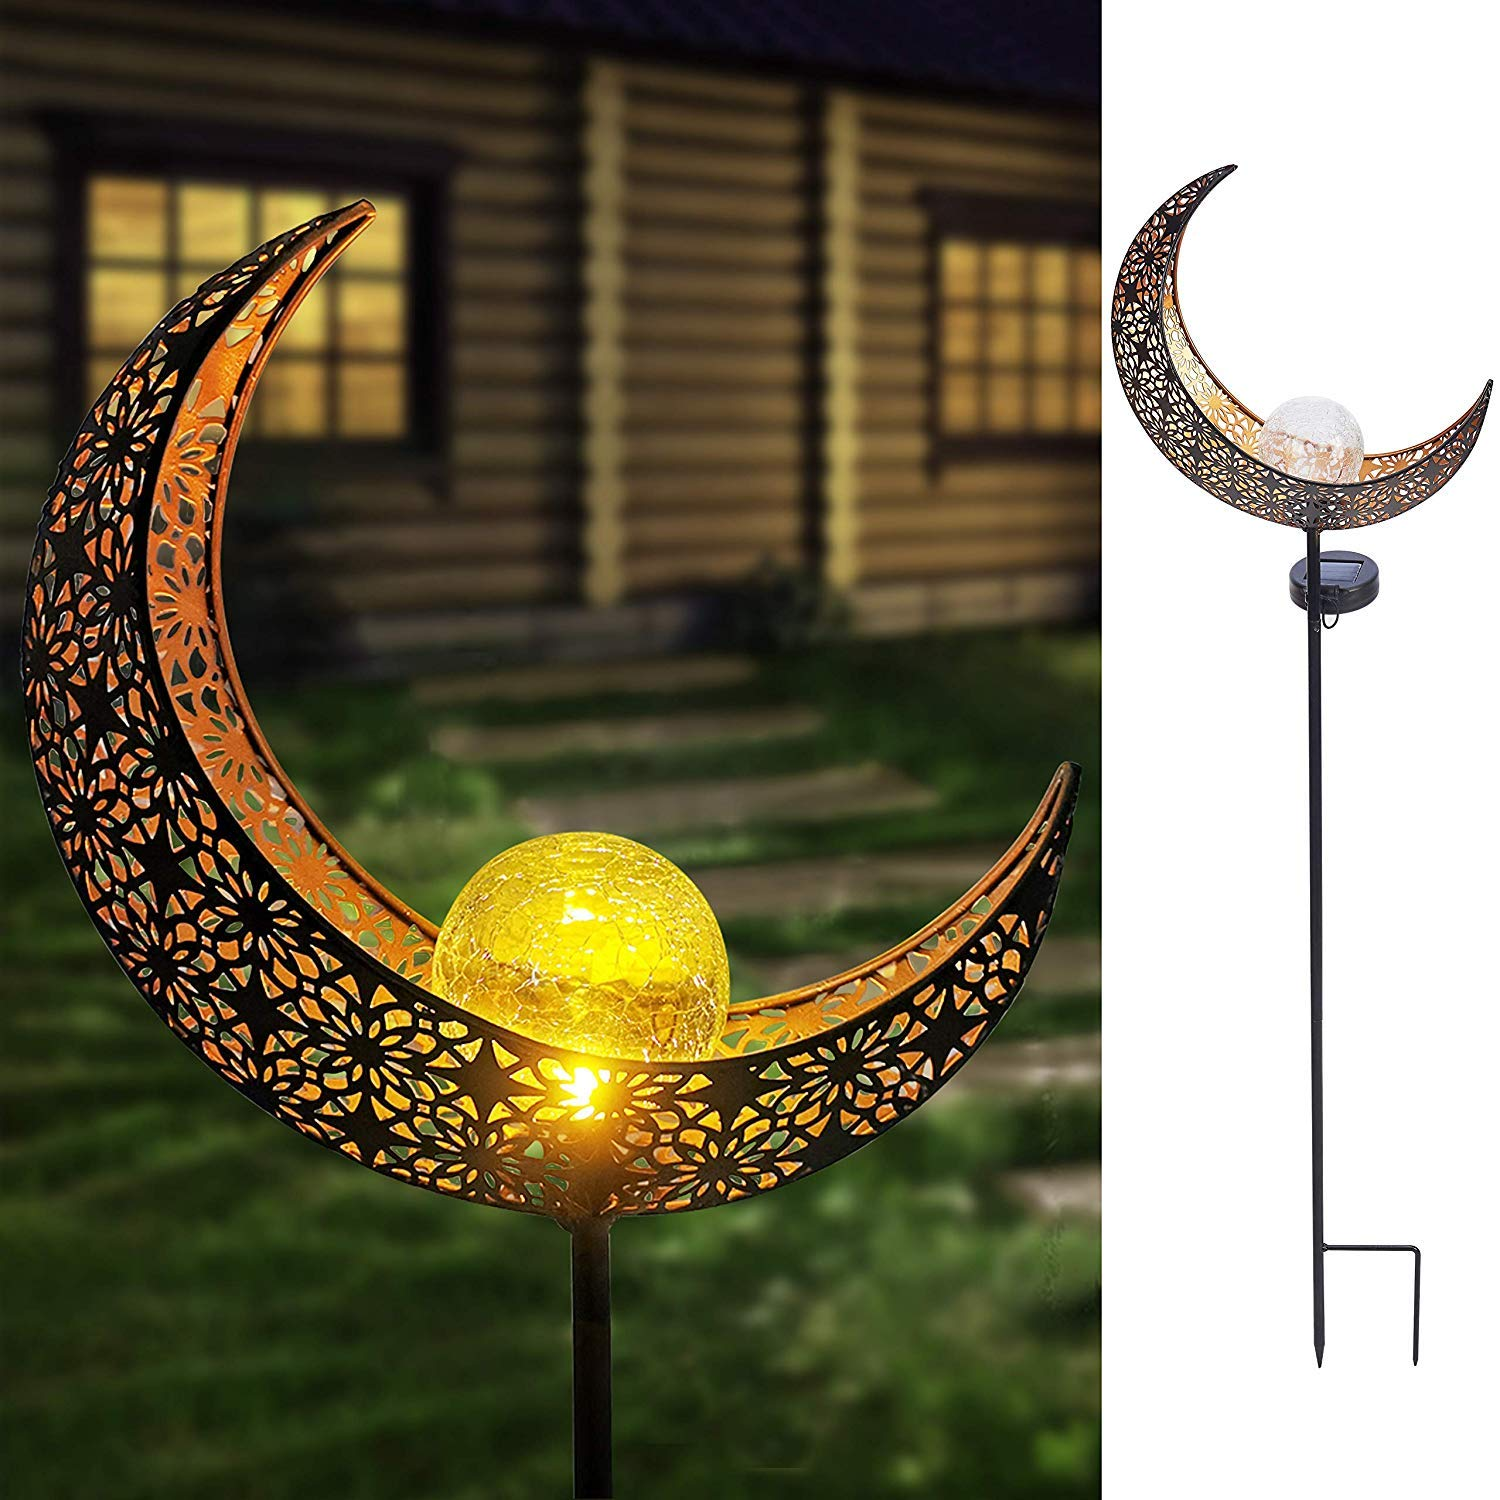 MAGGIFT 40 Inch Garden Solar Lights Outdoor Decorative Moon Garden Stakes Solar Pathway Light Decor Patio, Lawn, Garden